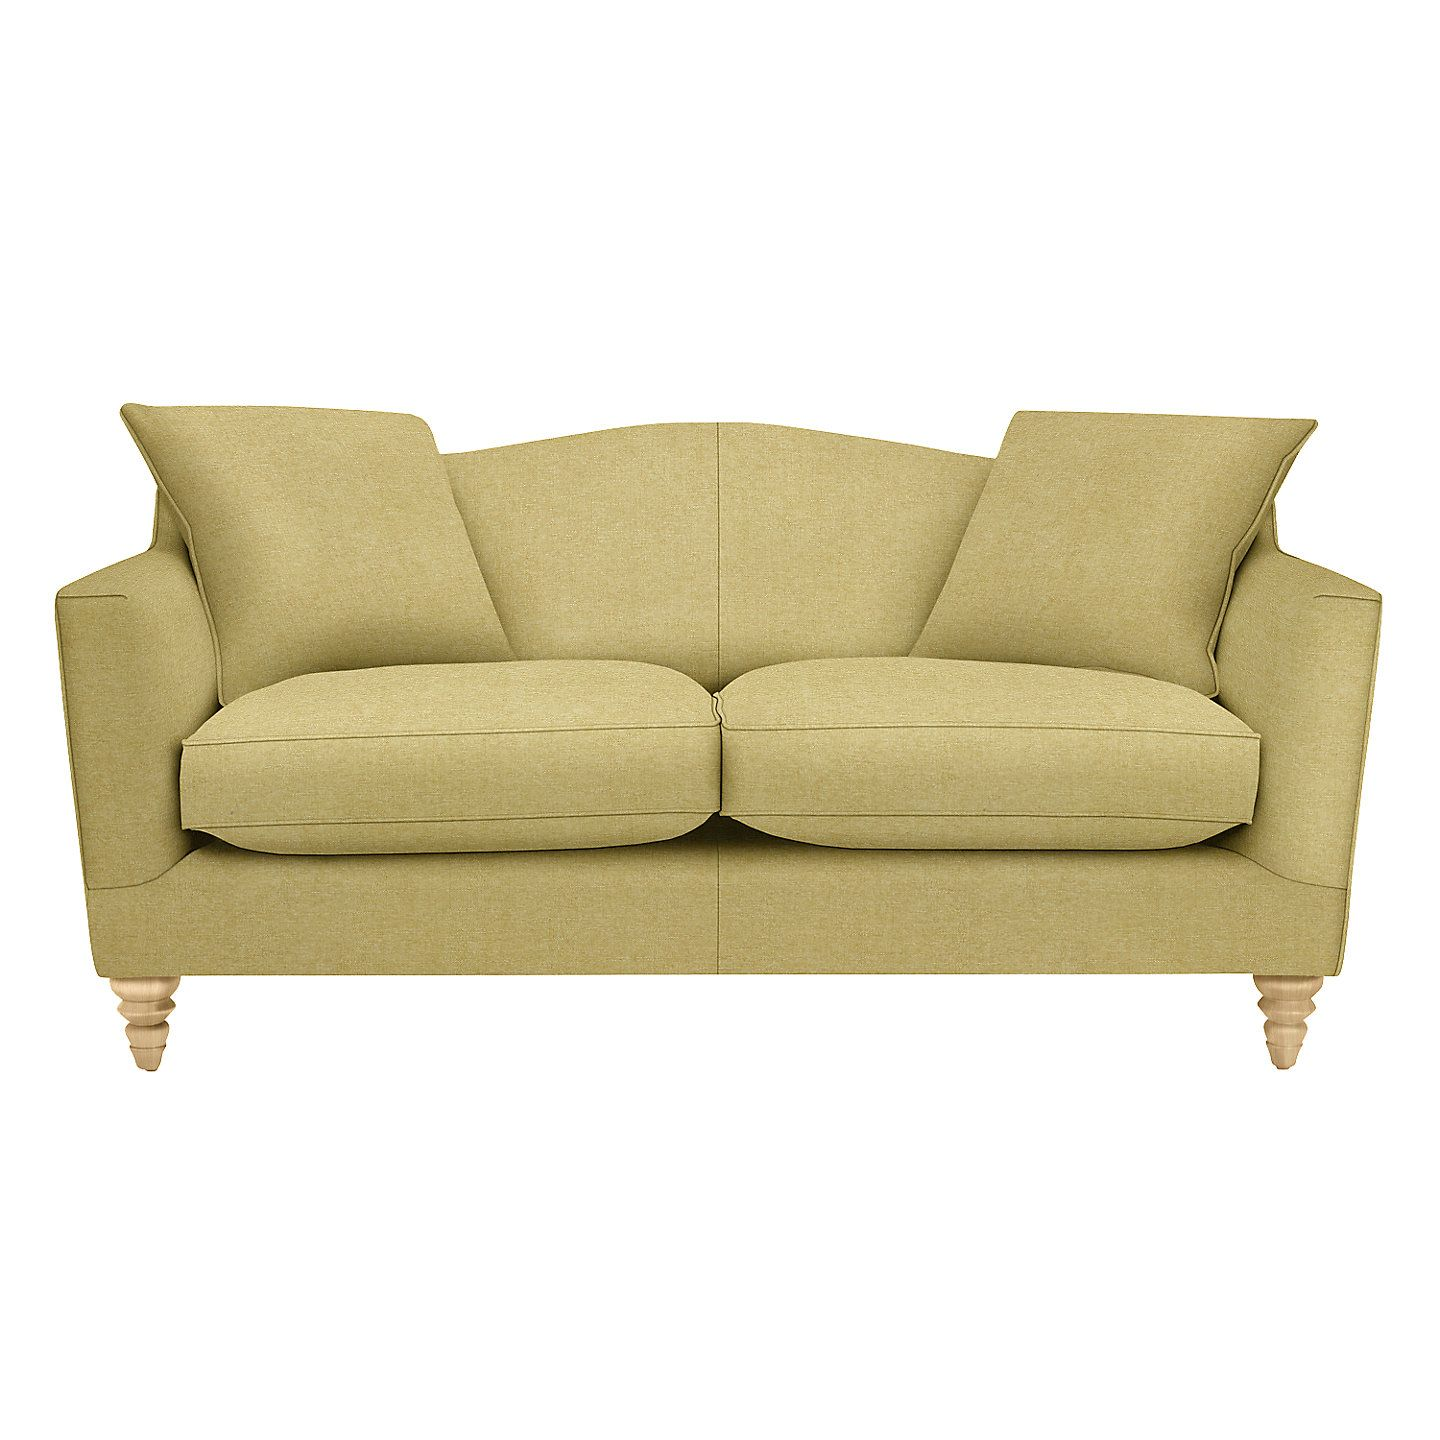 John Lewis Croft Collection Melrose Fixed Cover Medium 2 Seater